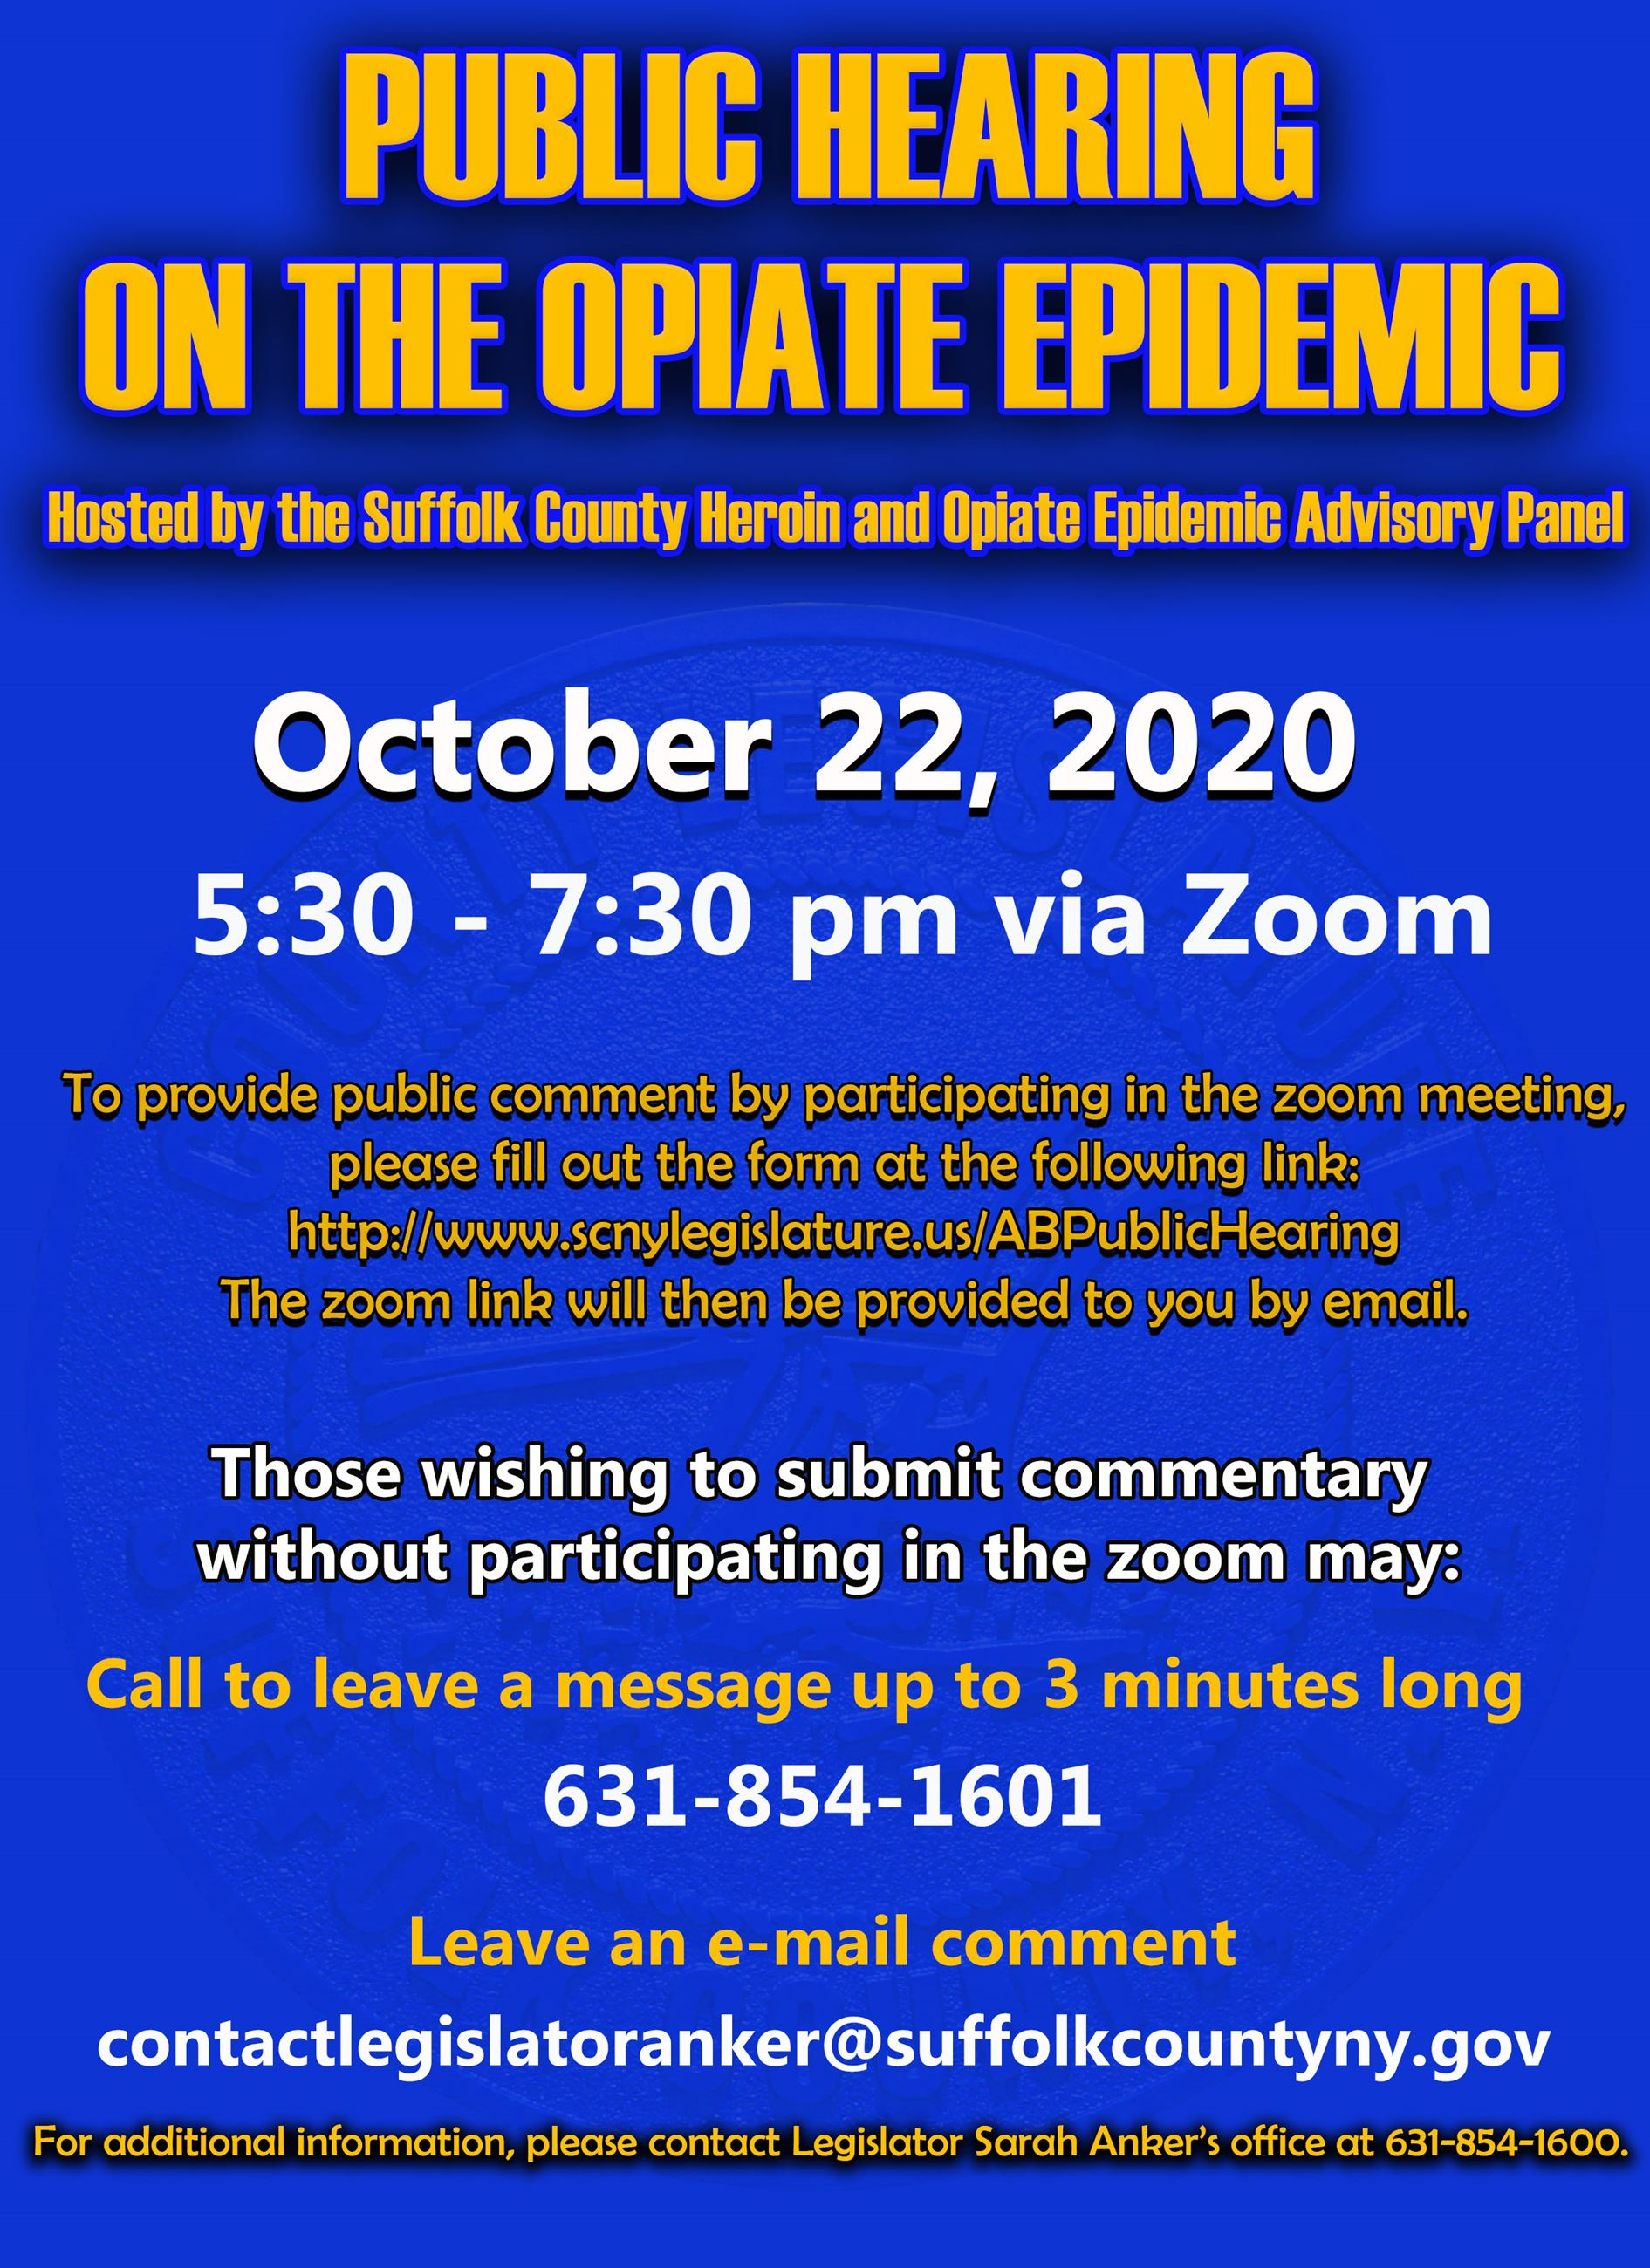 Heroin and Opiate Epidemic Advisory Panel's October Public Hearing Meeting